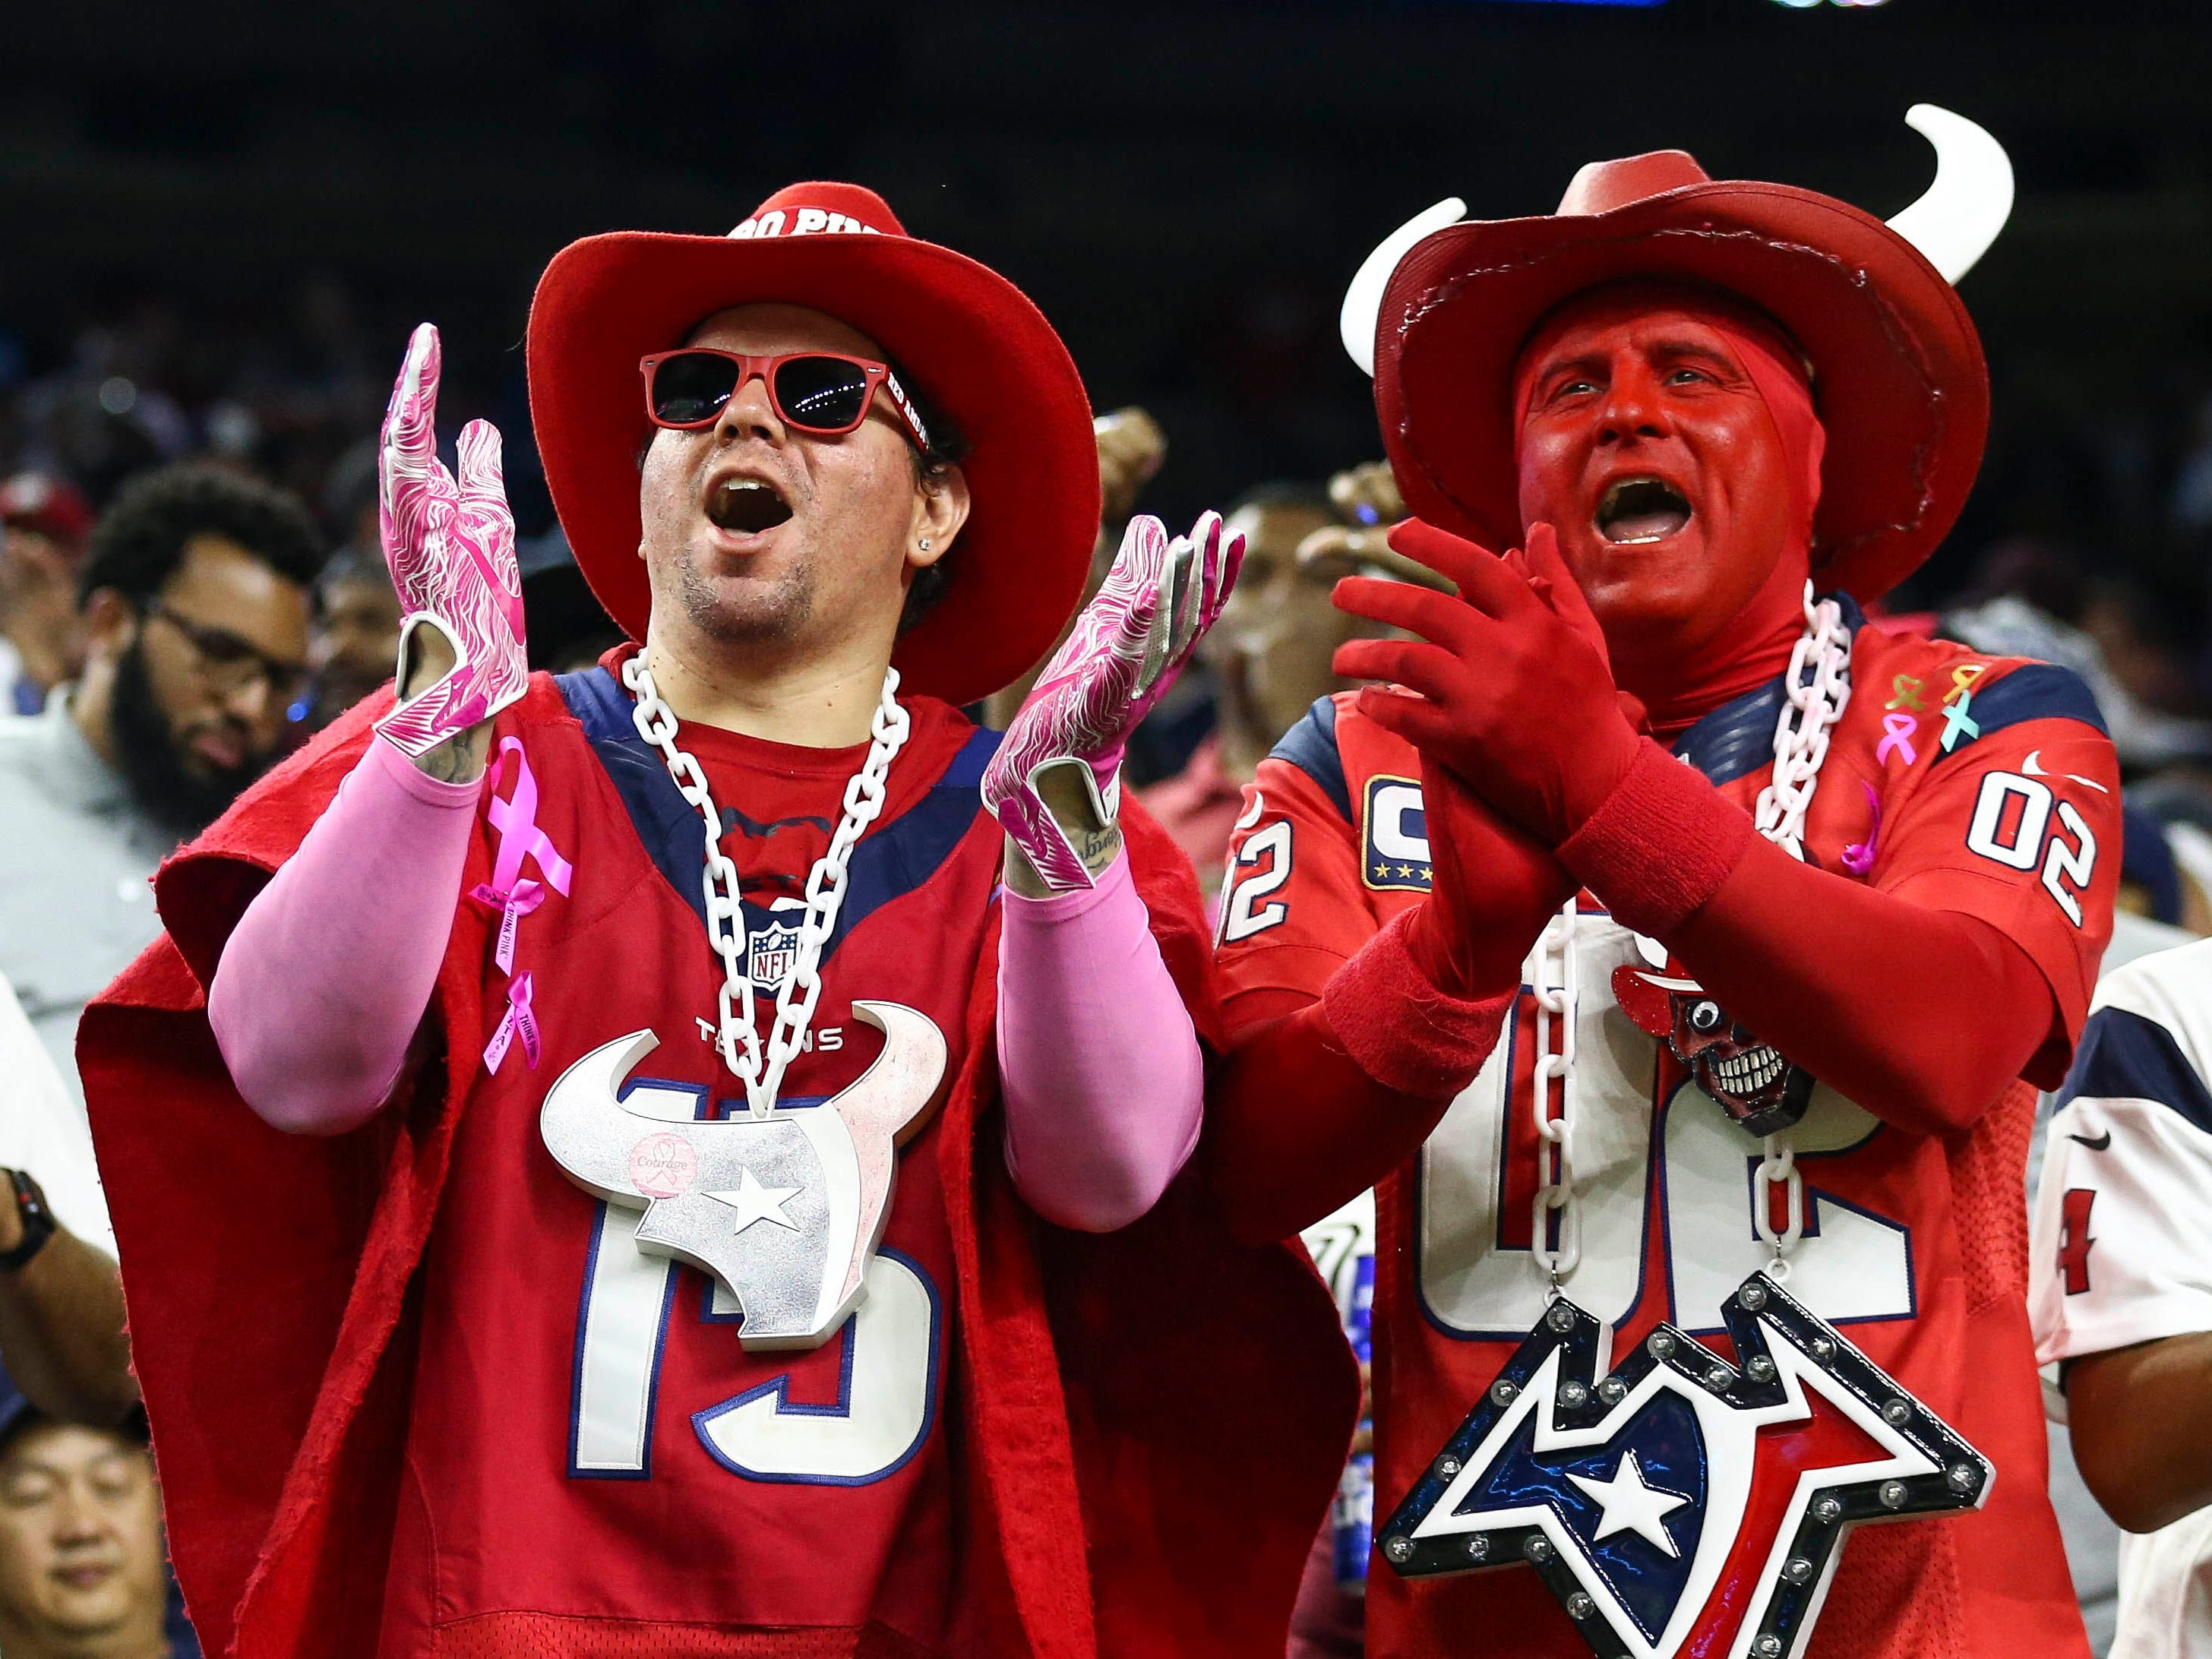 Fans cheer during the game between the Houston Texans and the Dallas Cowboys at NRG Stadium.